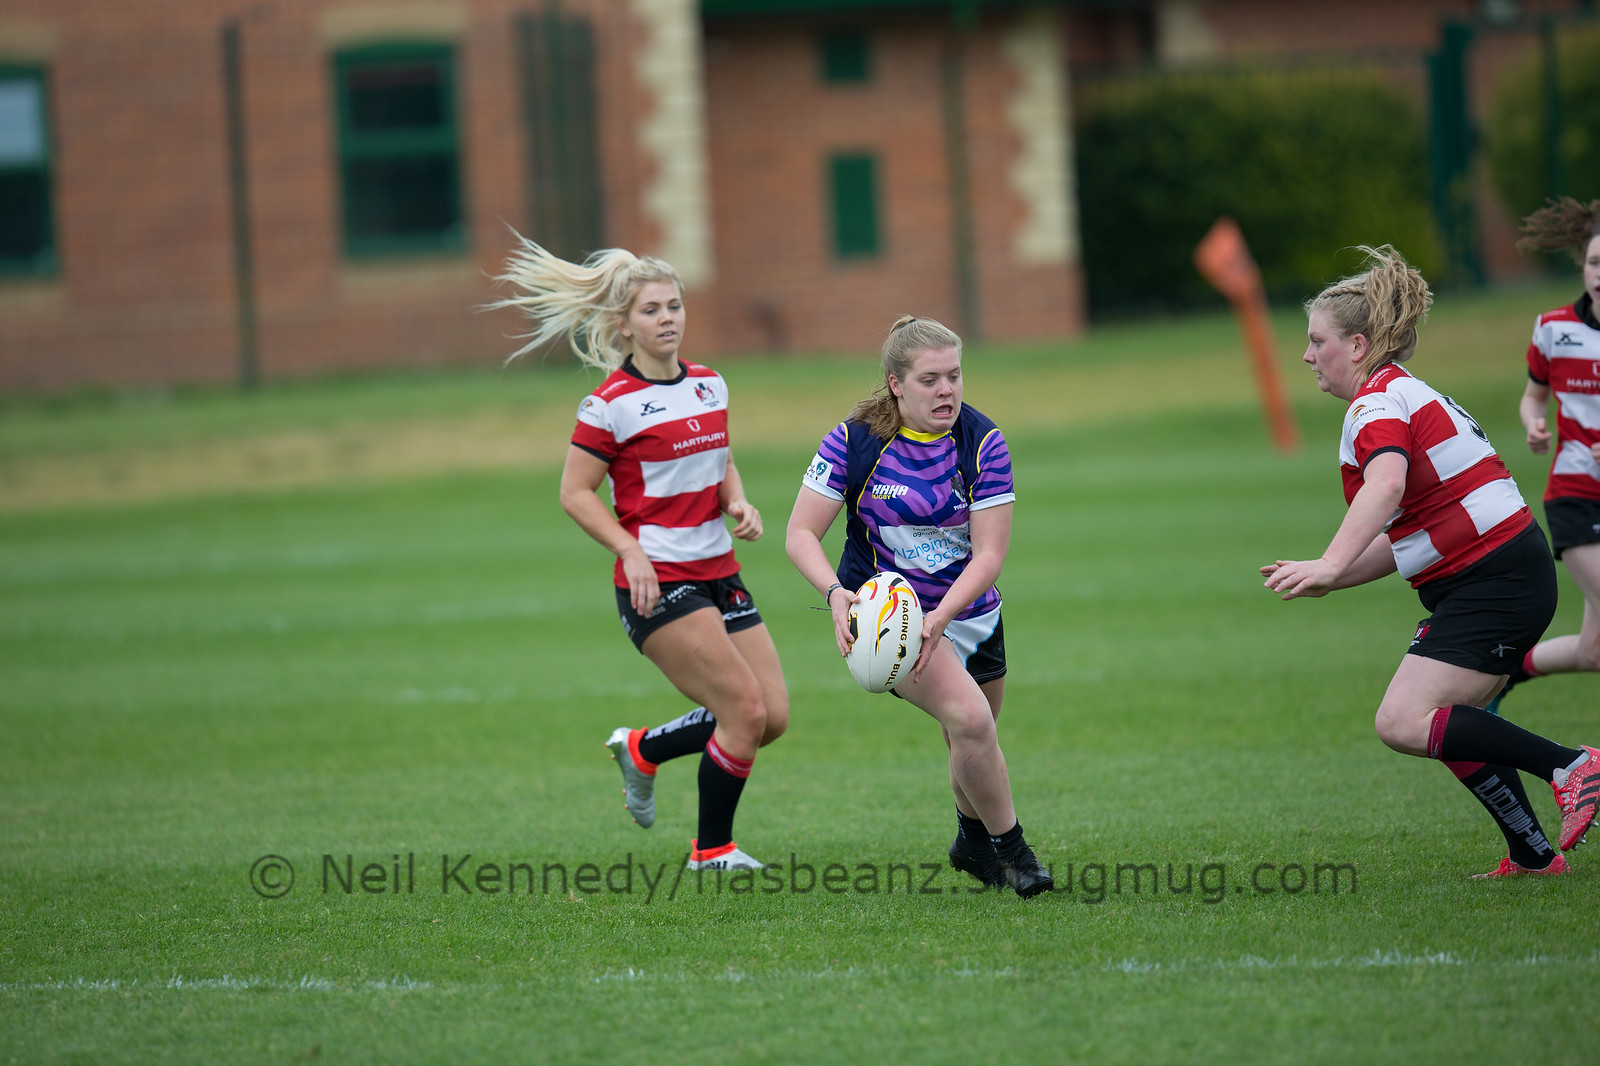 Daisey Fahey with the ball